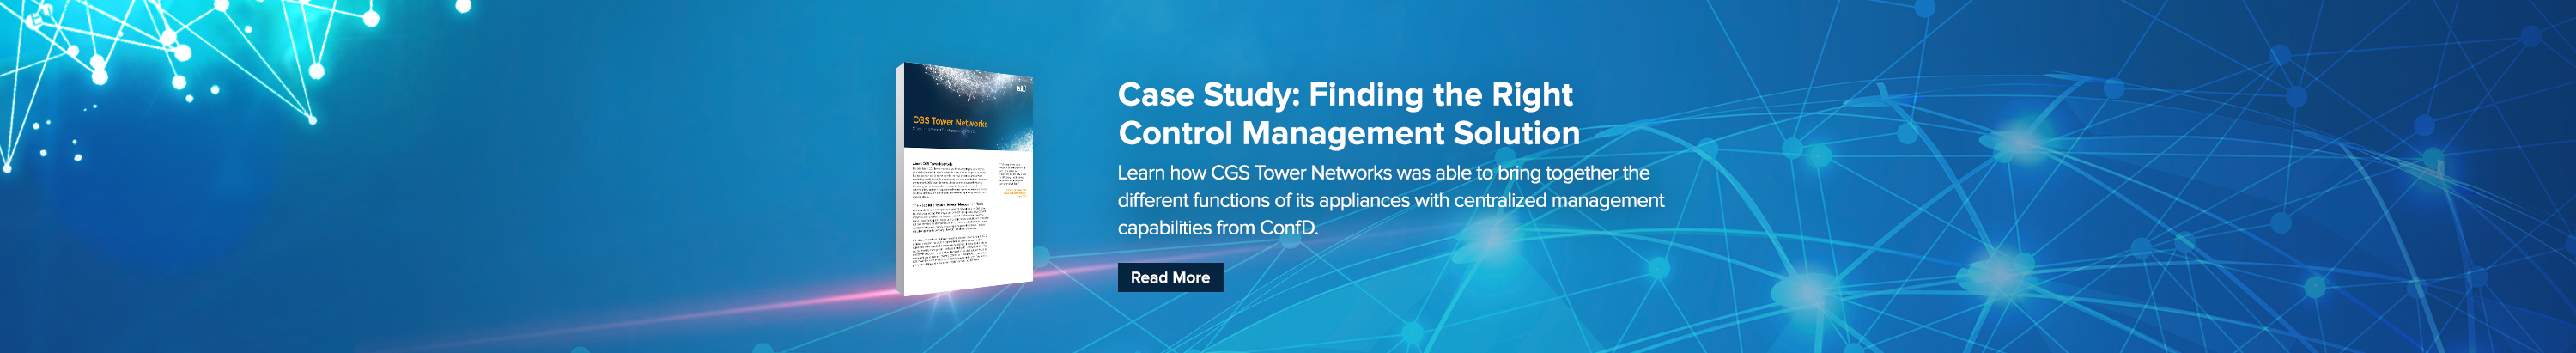 CGS Tower Networks Case Study Redirect